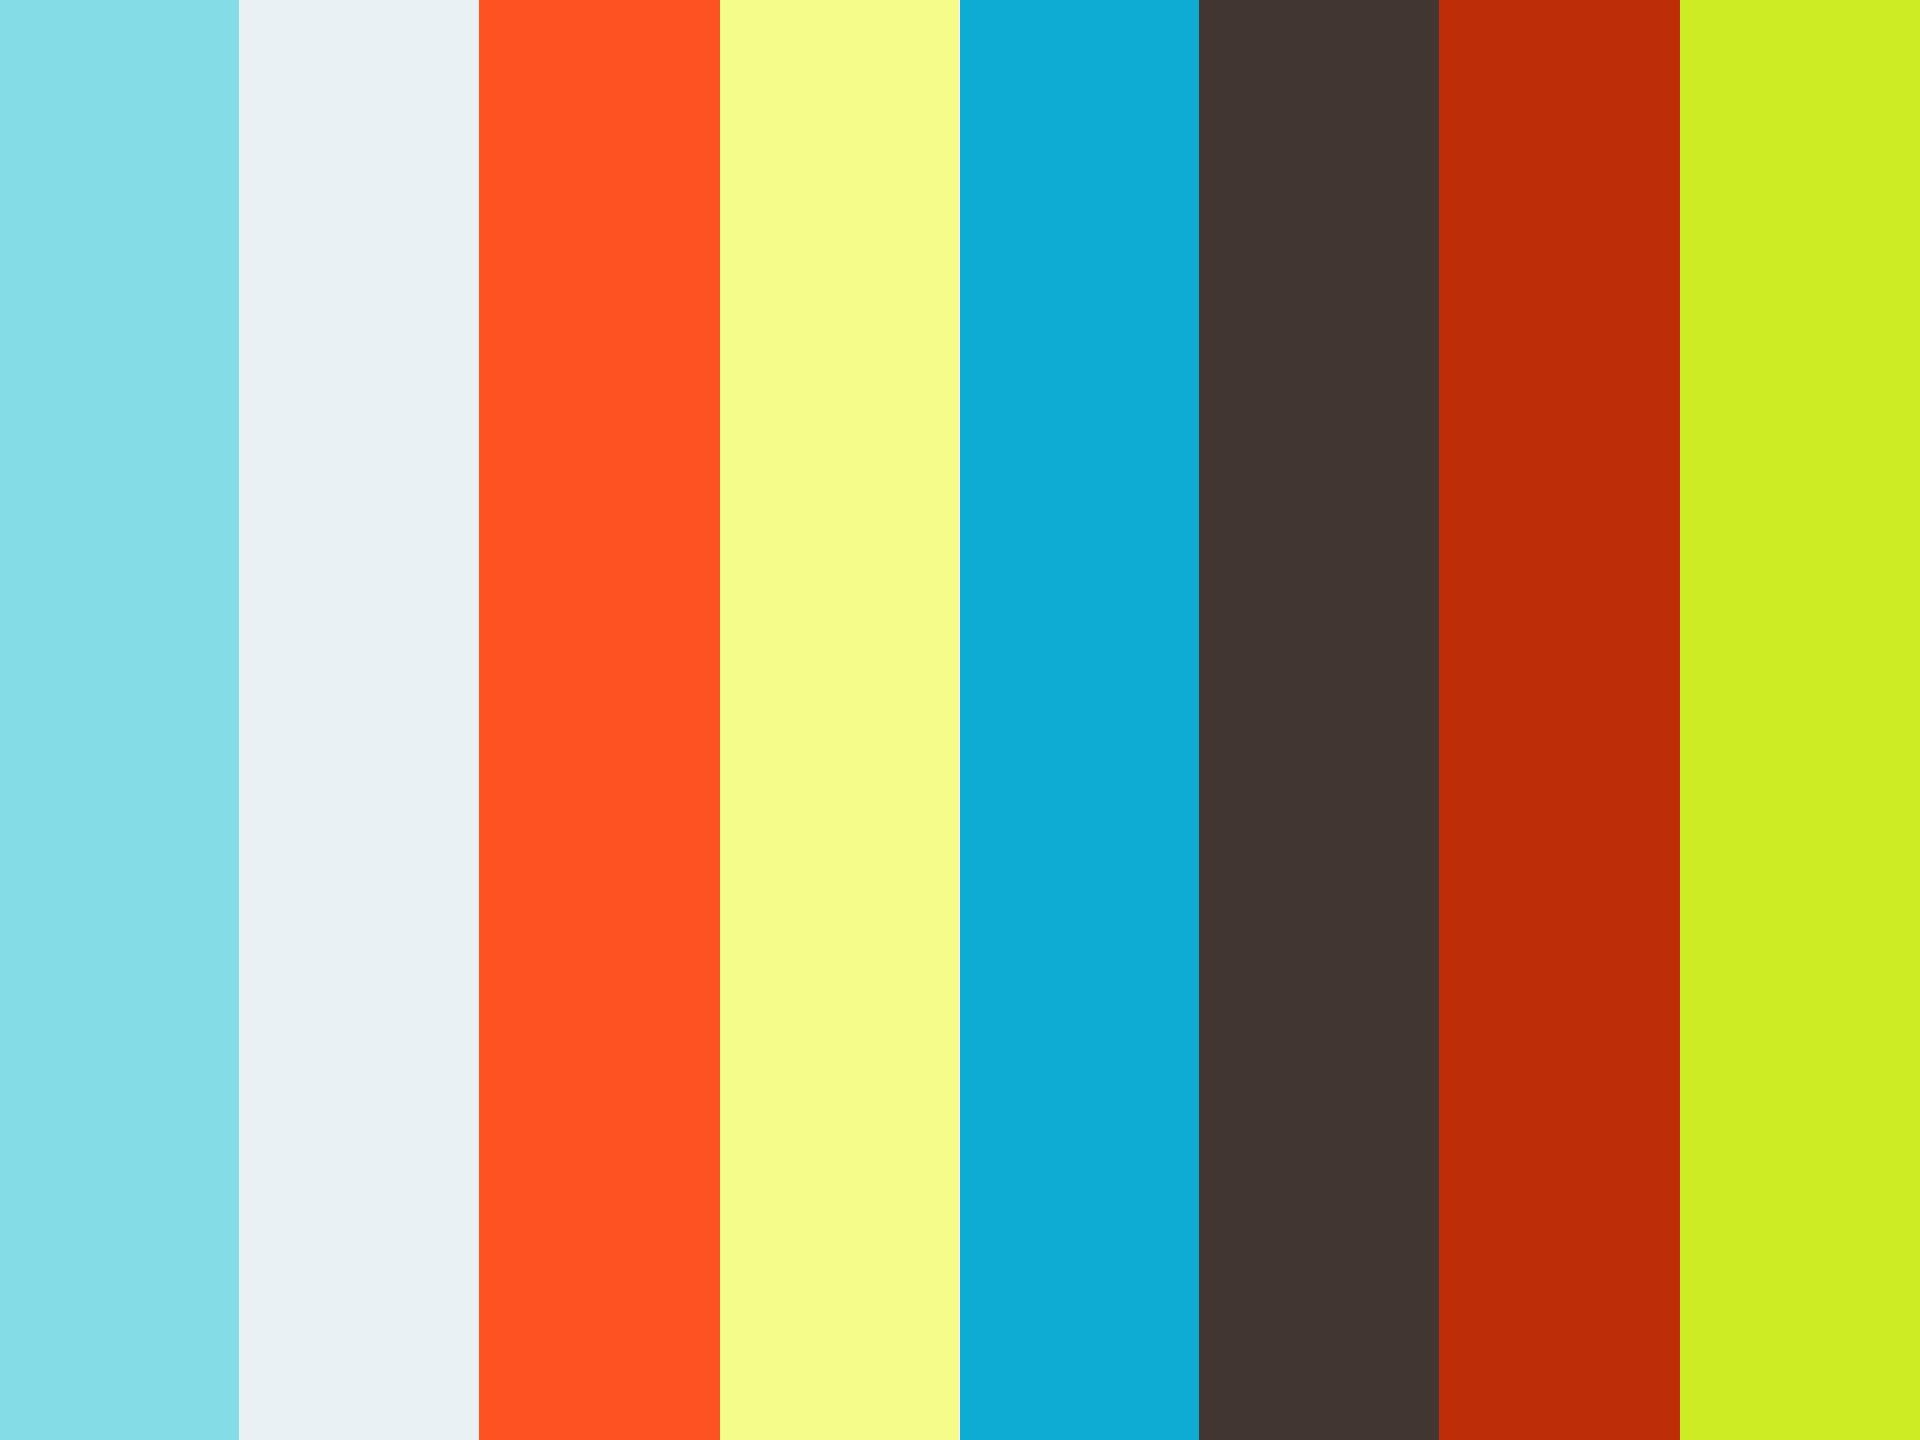 Apple Bottom Jeans song. on Vimeo